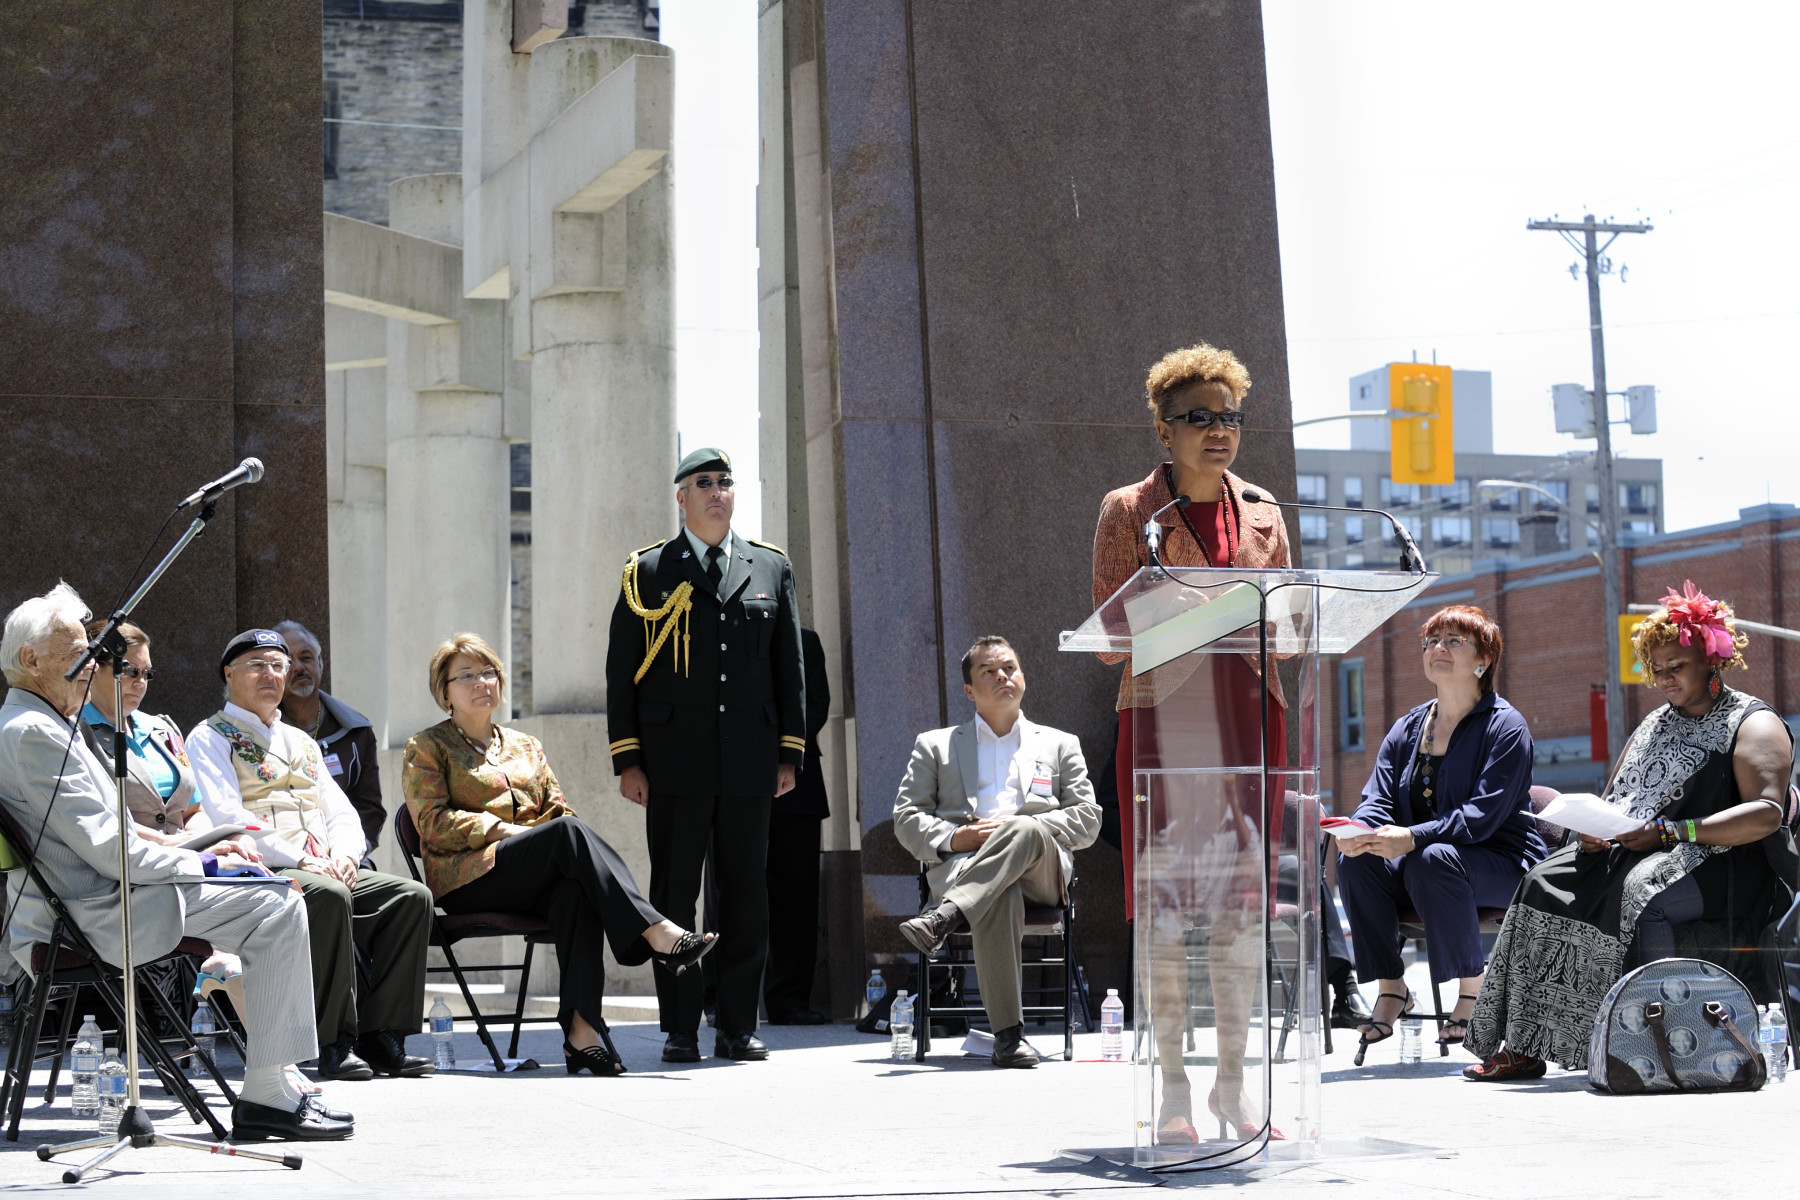 On the occasion of National Aboriginal Day, Her Excellency participated in a dedication ceremony at the Canadian Tribute to Human Rights monument, in Ottawa. The event highlighted the completion of plaques, written in 73 Aboriginal languages and carved onto granite within the Canadian Tribute to Human Rights monument.